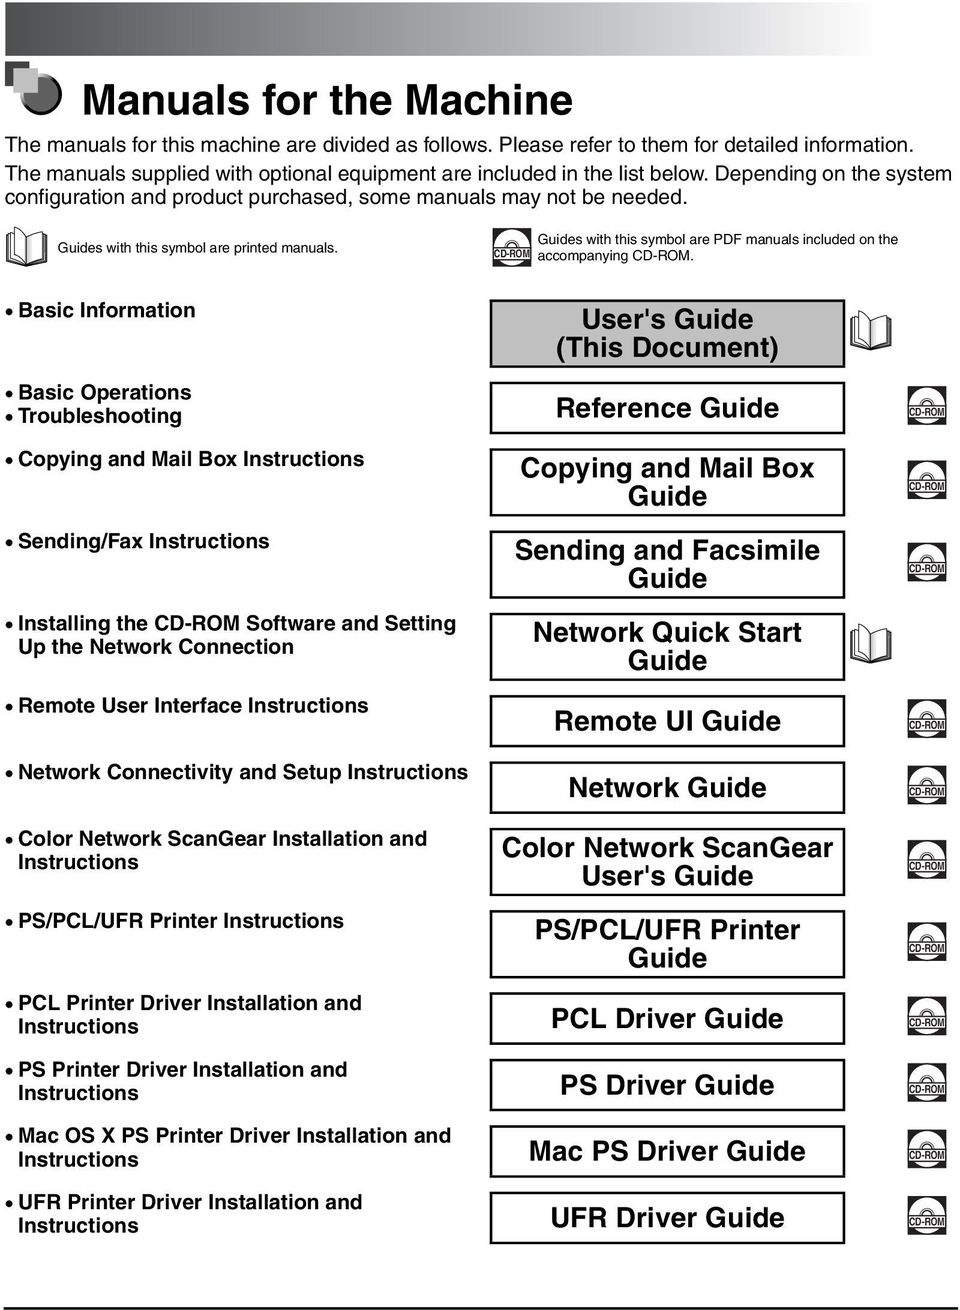 CD-ROM Guides with this symbol are PDF manuals included on the accompanying CD-ROM.